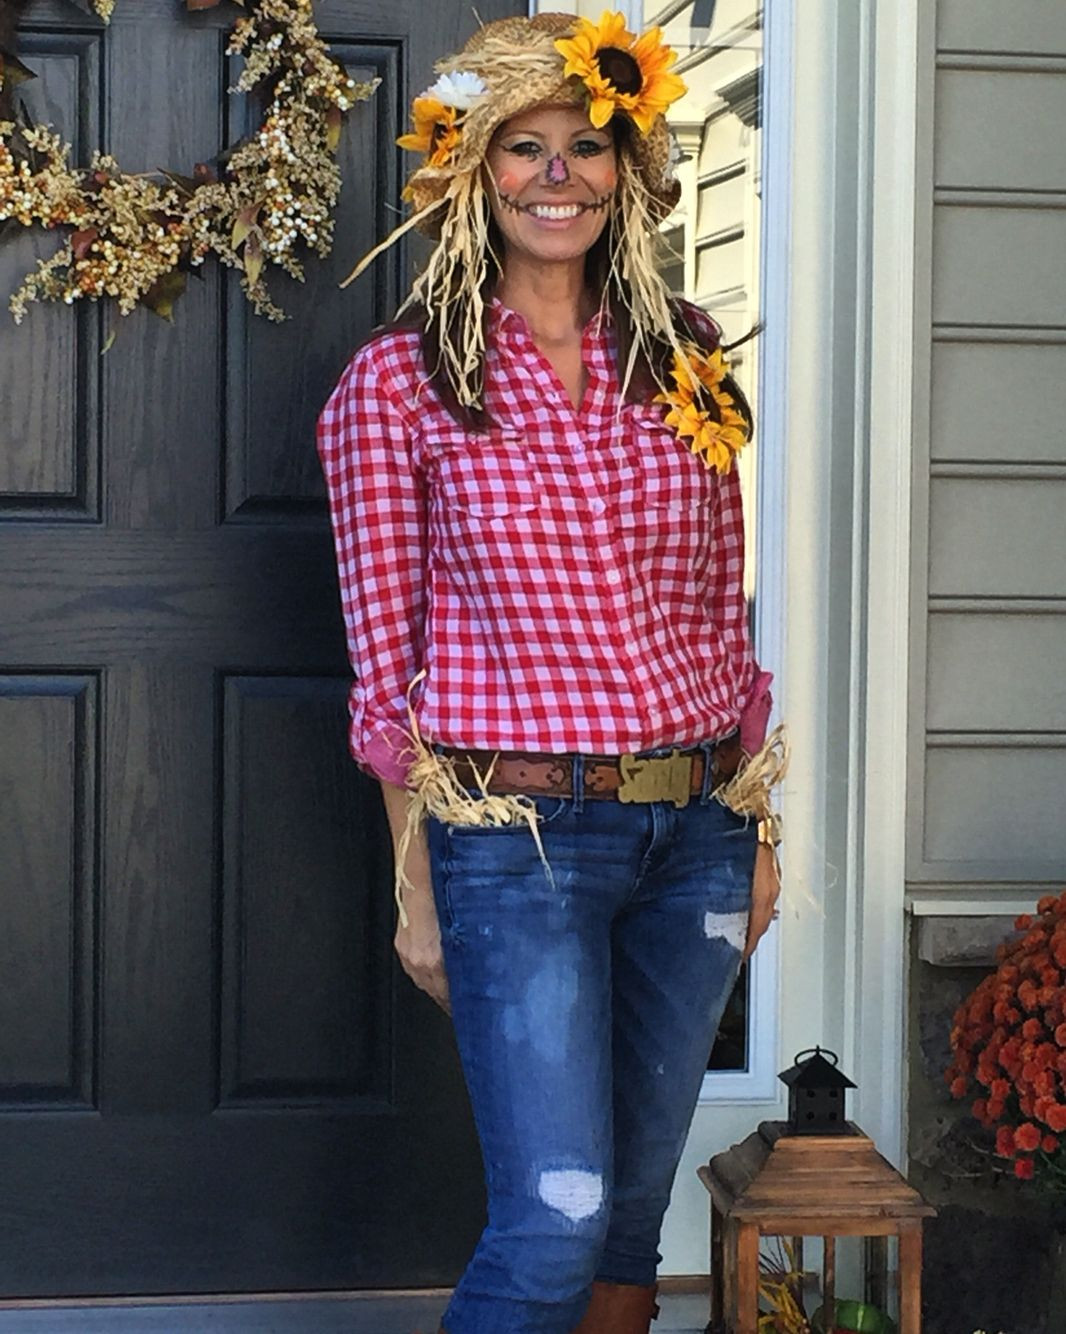 Best ideas about Scarecrow Halloween Costume DIY . Save or Pin Scarecrow costume Halloween Now.